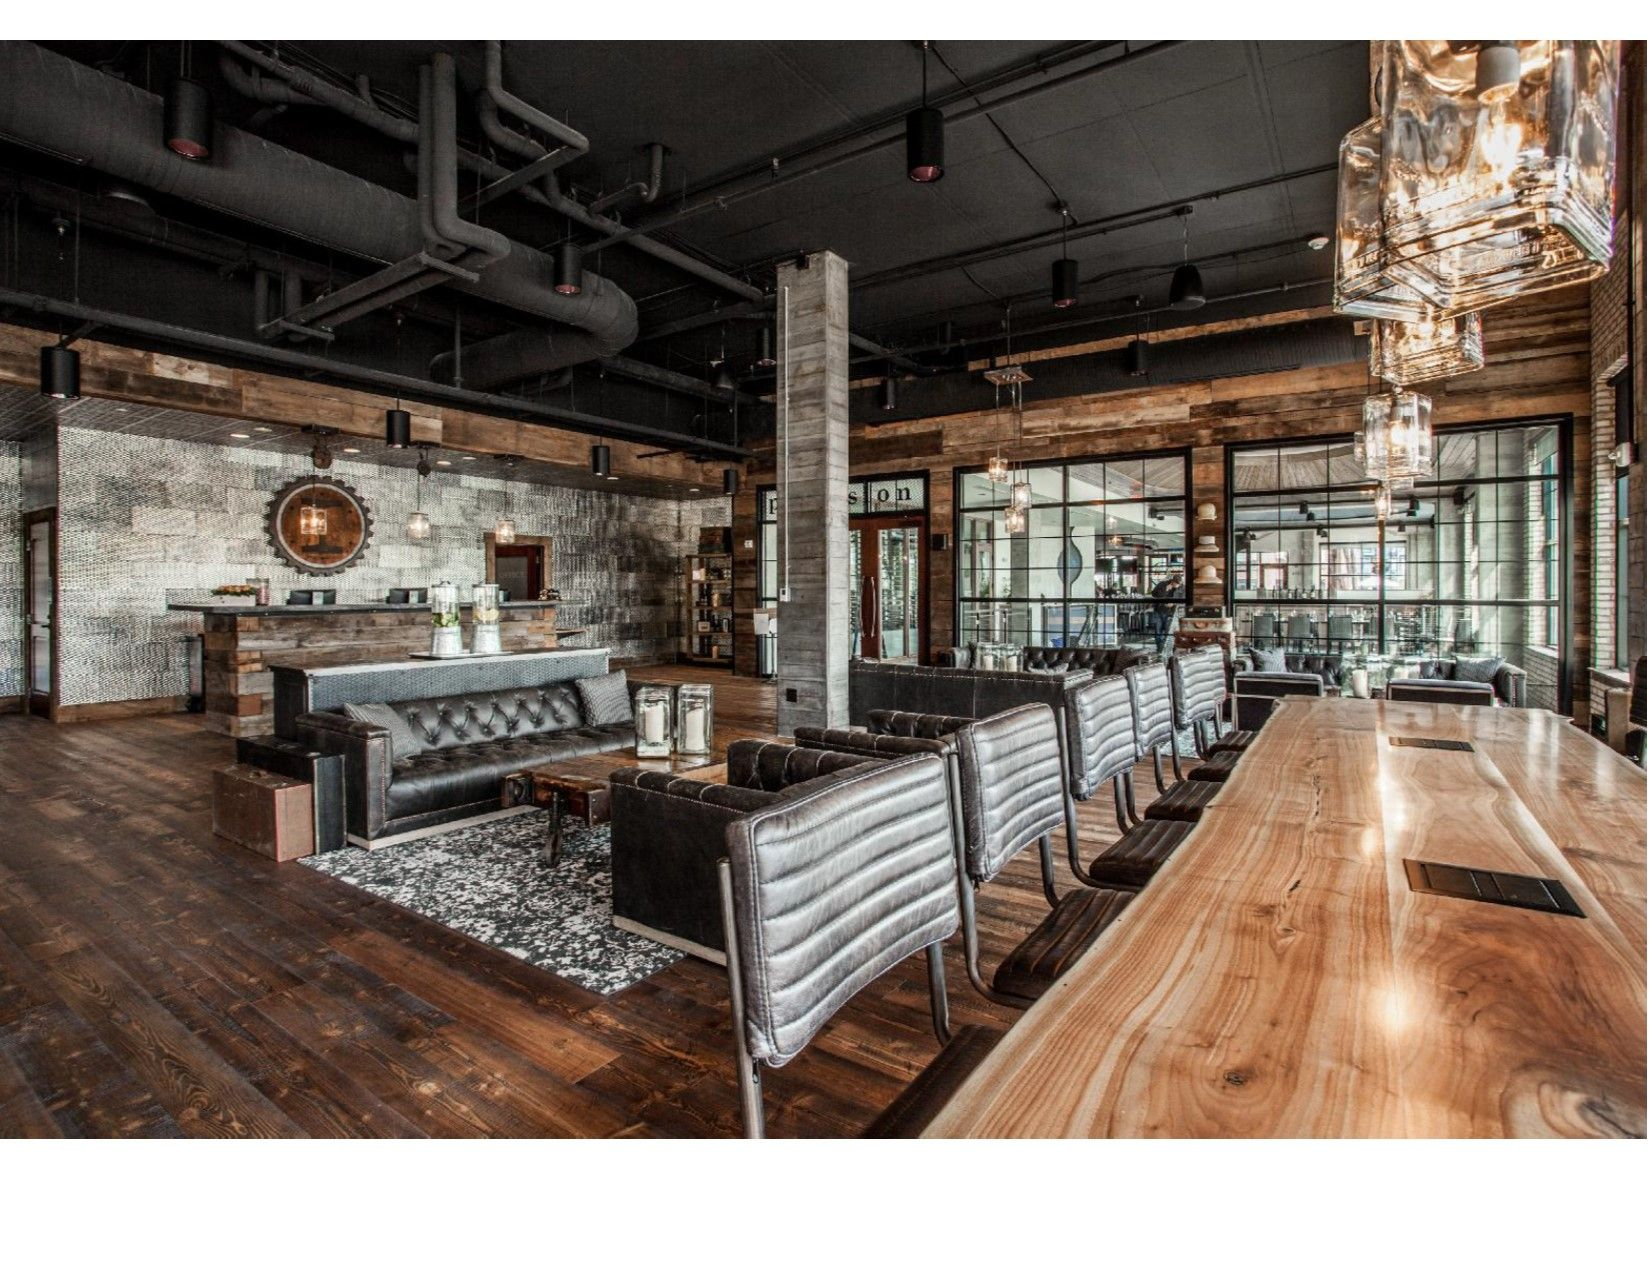 Here S Another Picture From The Ironworks Hotel In Beloit Wisconsin Featured Throughout Is Our Mountain Collection Douglas Fir Flooring